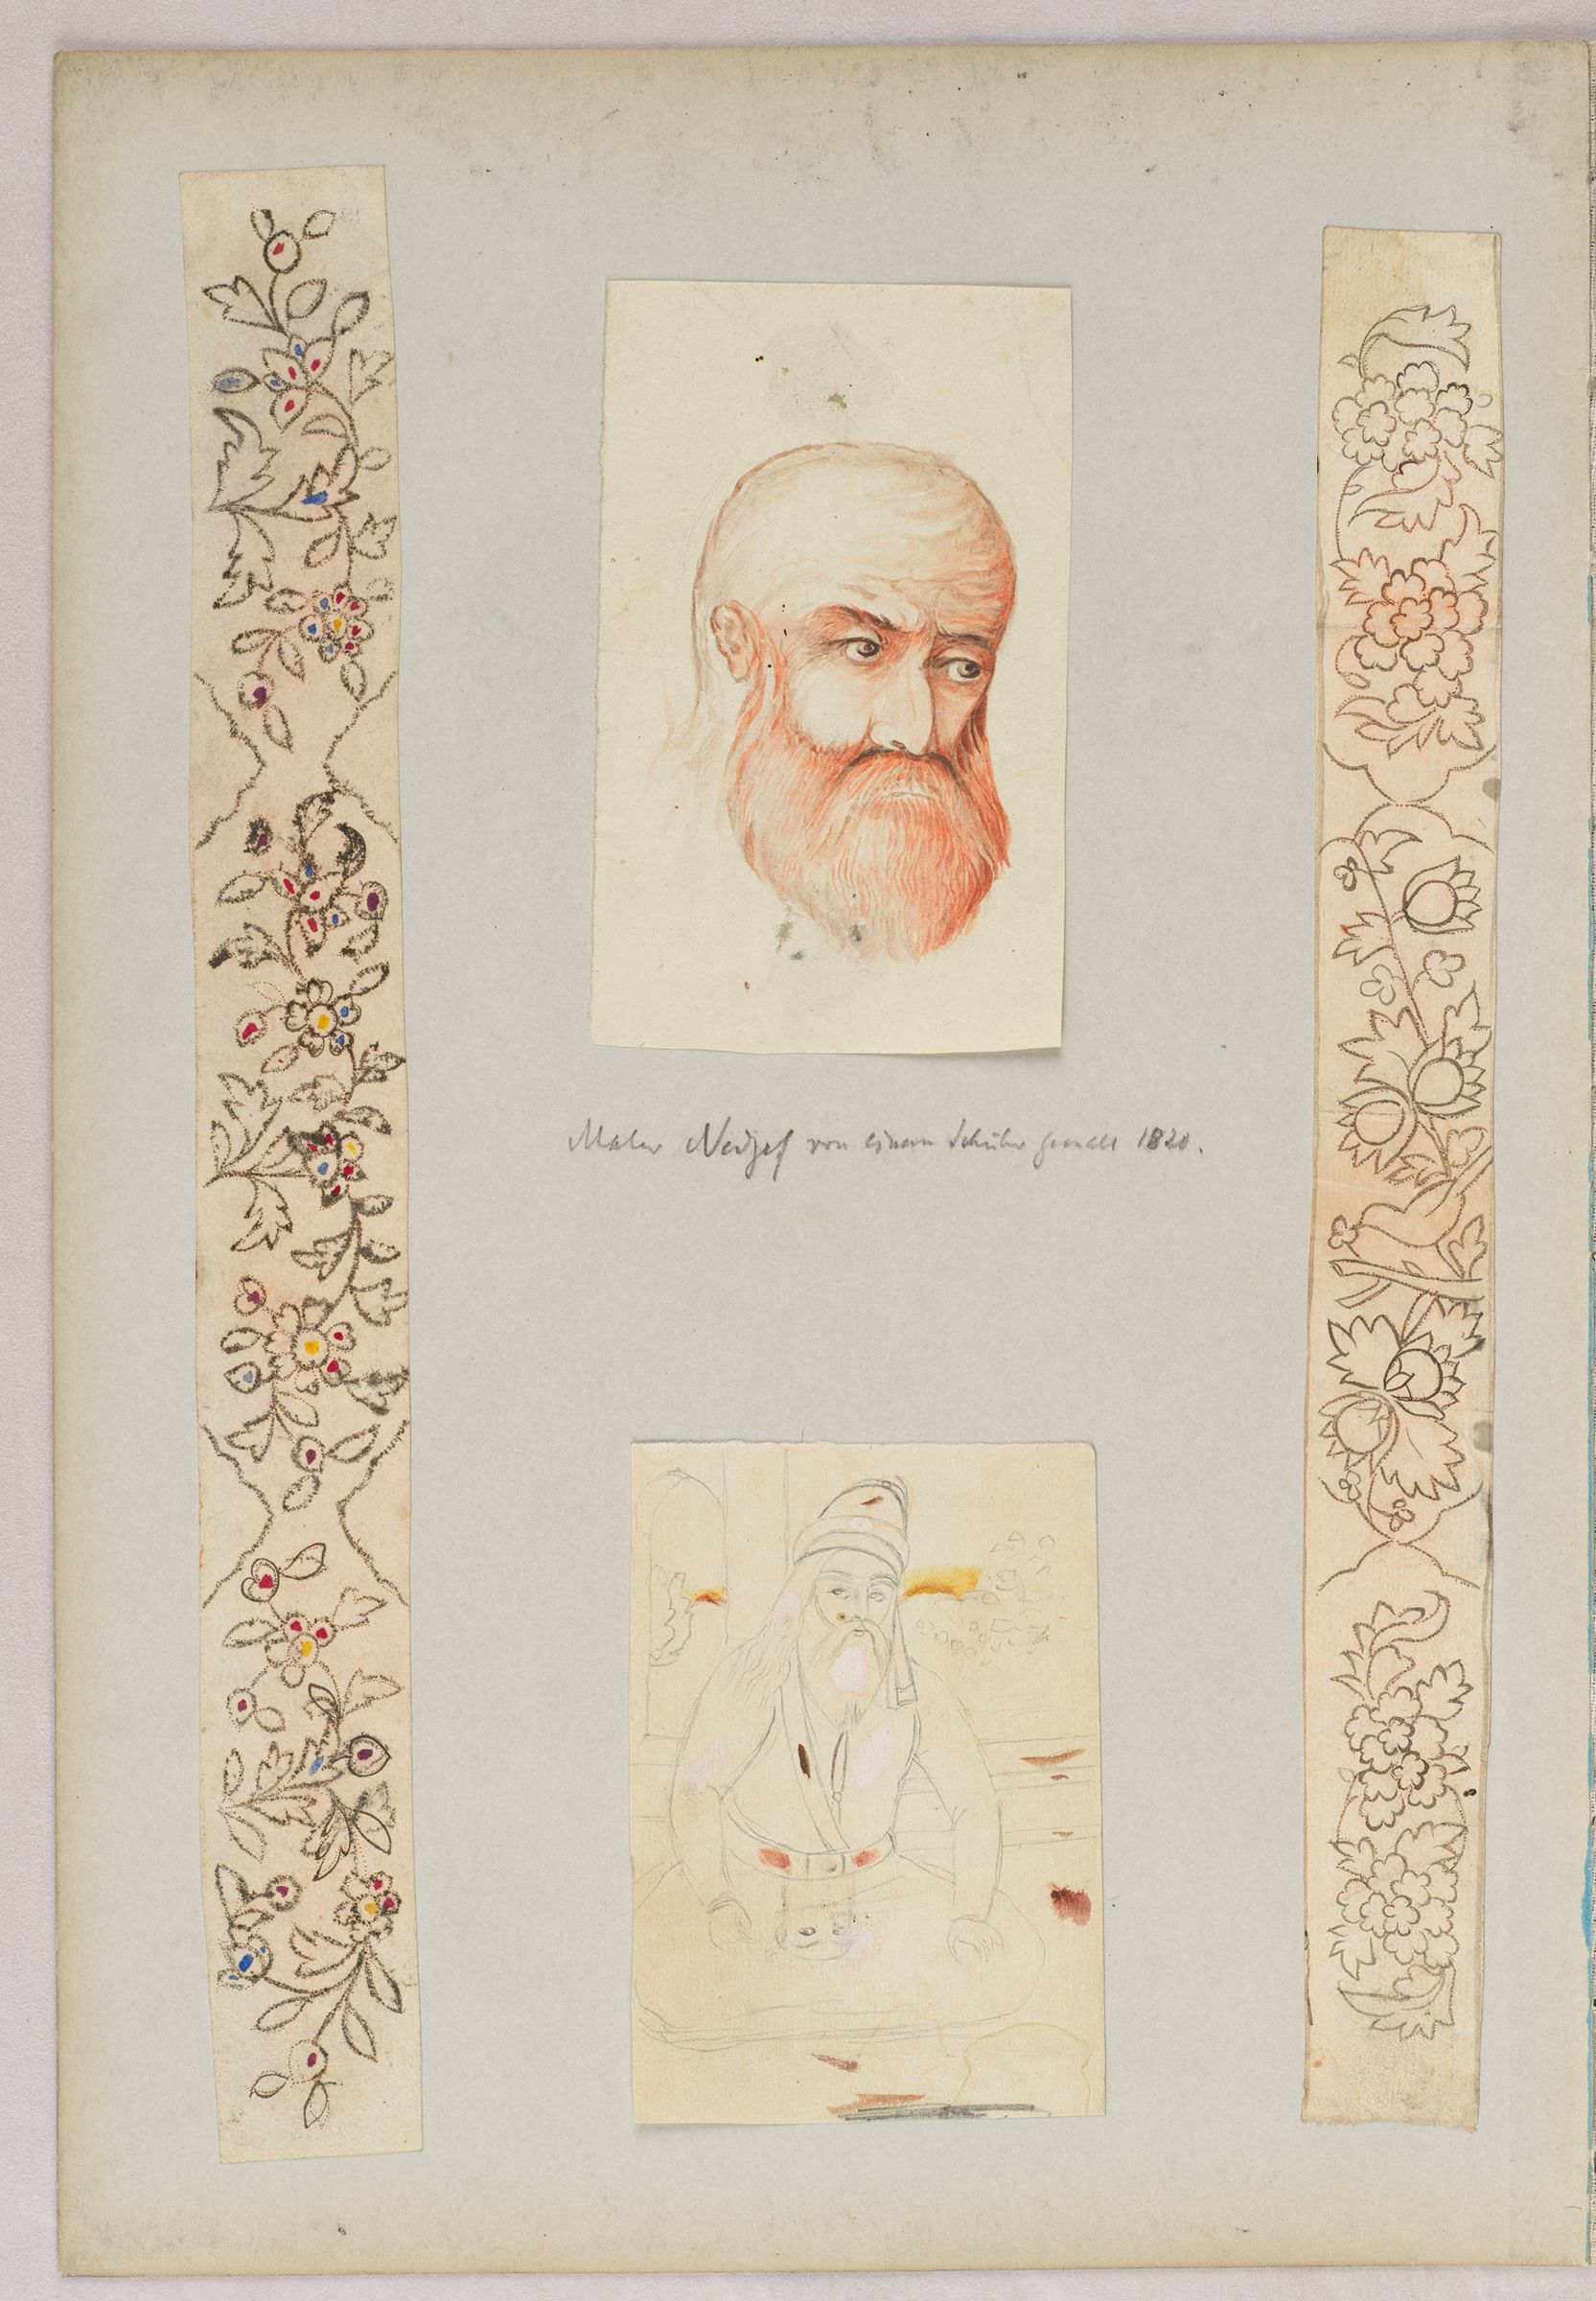 Folio 36 From An Album Of Drawings And Paintings: Four Drawings; Two Designs For Penboxes; Head Of A Bearded Man; Seated Dervish (Recto); Blank Page (Verso)